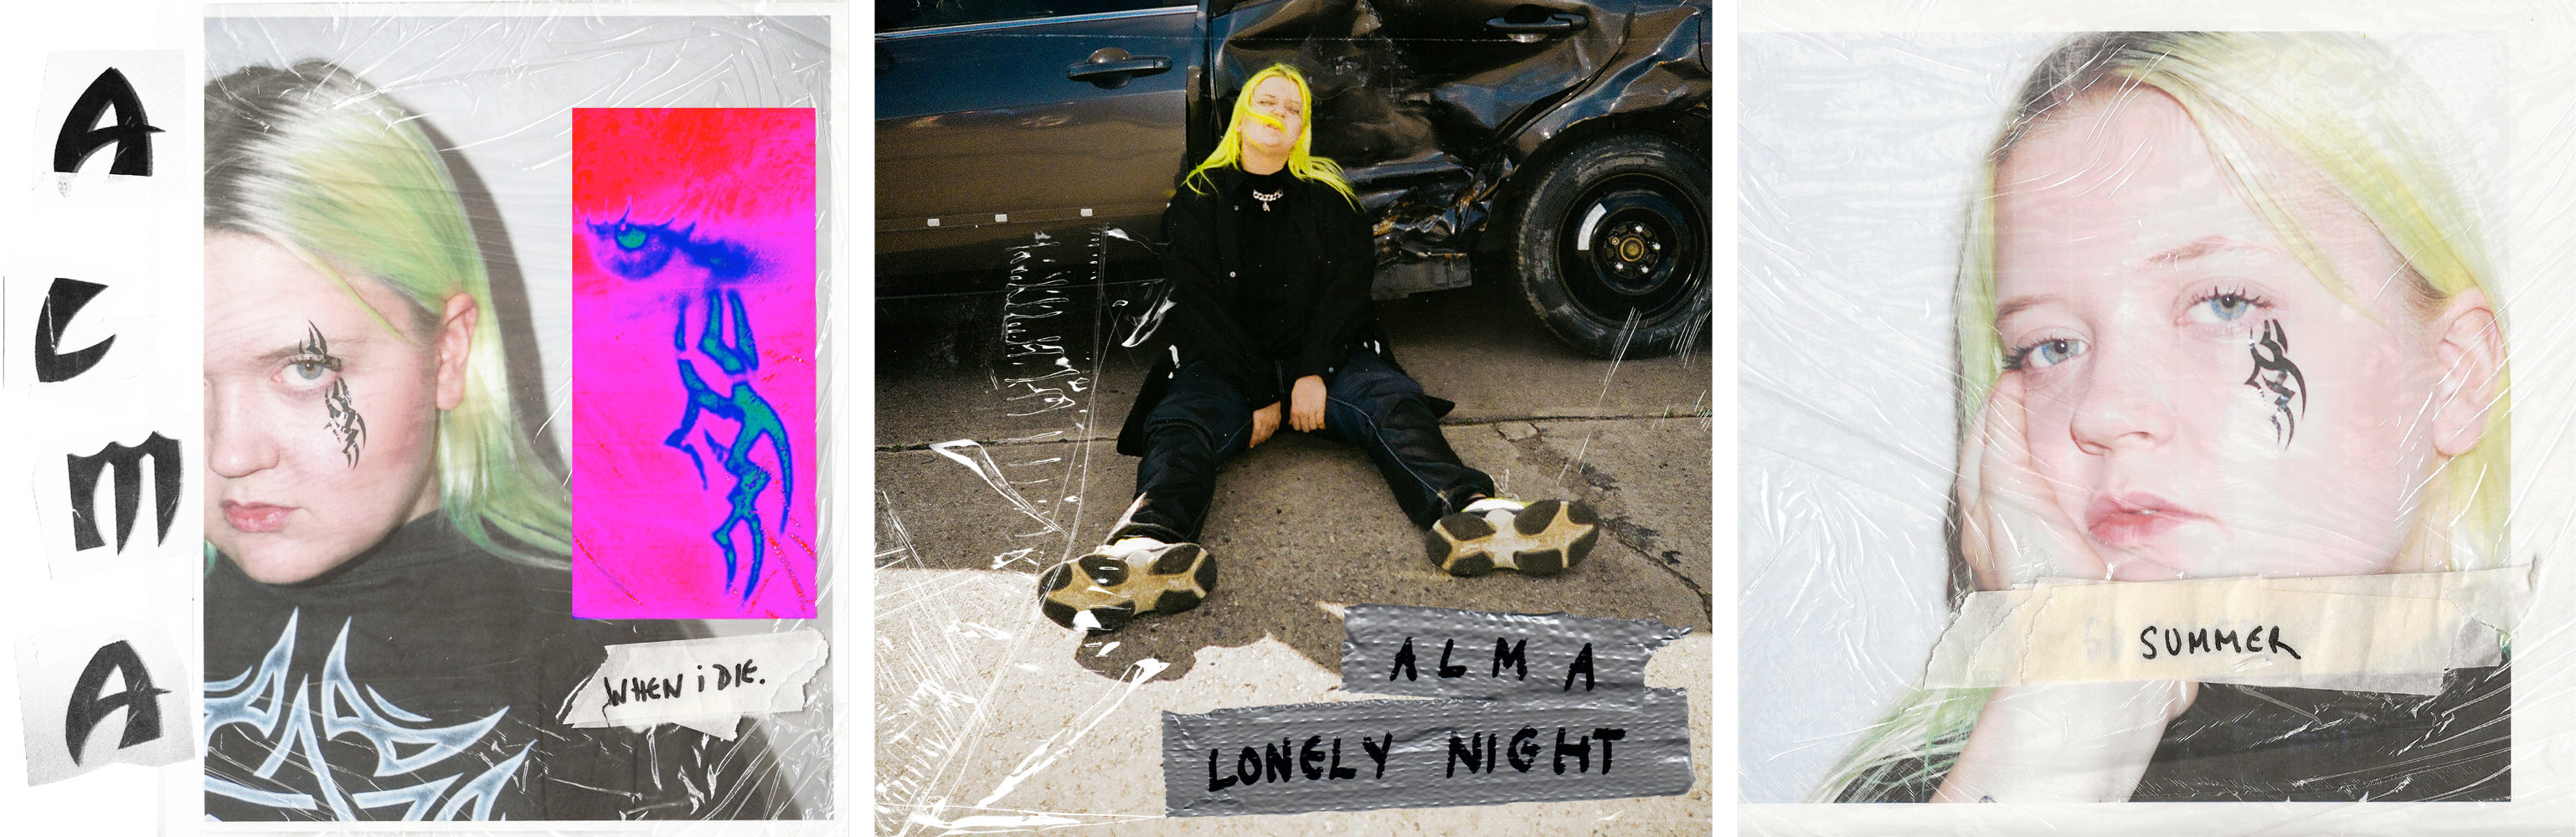 Alma Singles When I Die Lonely Night Summer